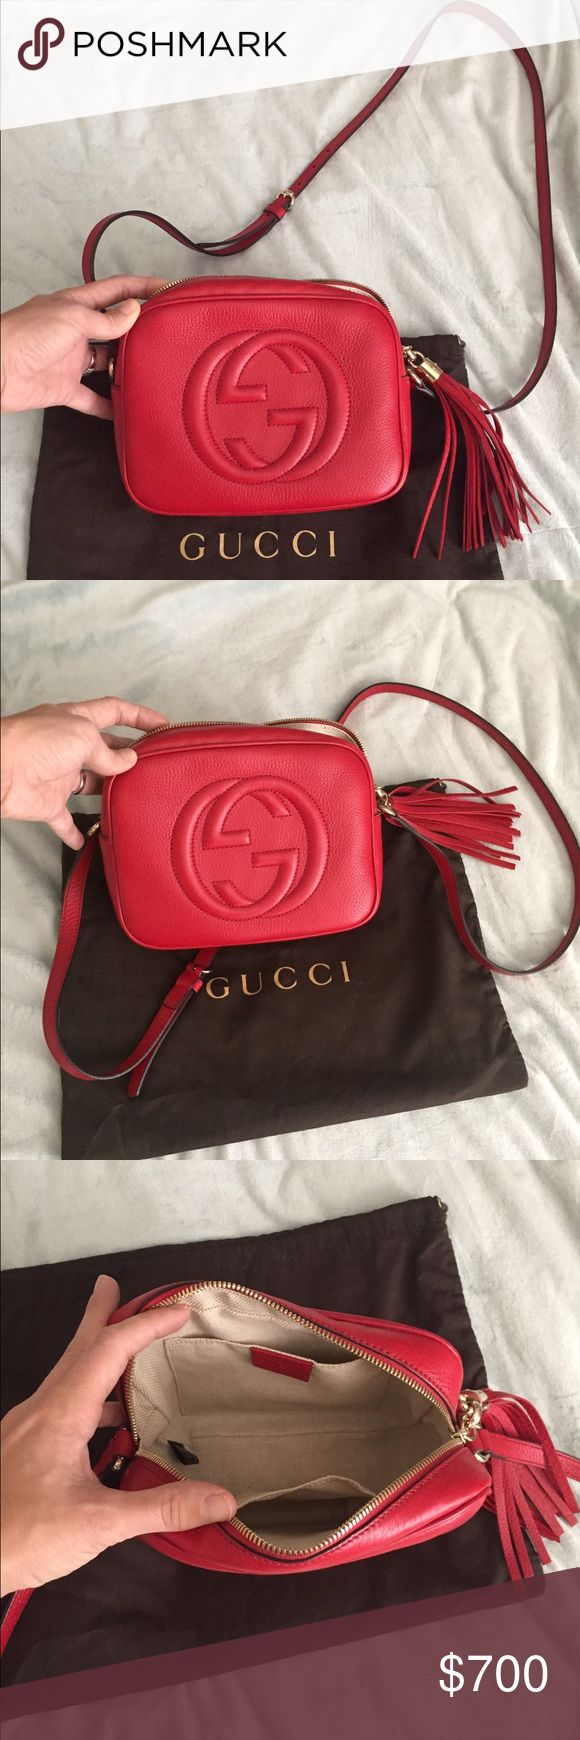 Gucci Soho Disco *RELISTING: Please see previous listing! LIKE NEW condition! Gorgeous Gucci bag! PRICE IS FIRM. Gucci Bags Crossbody Bags